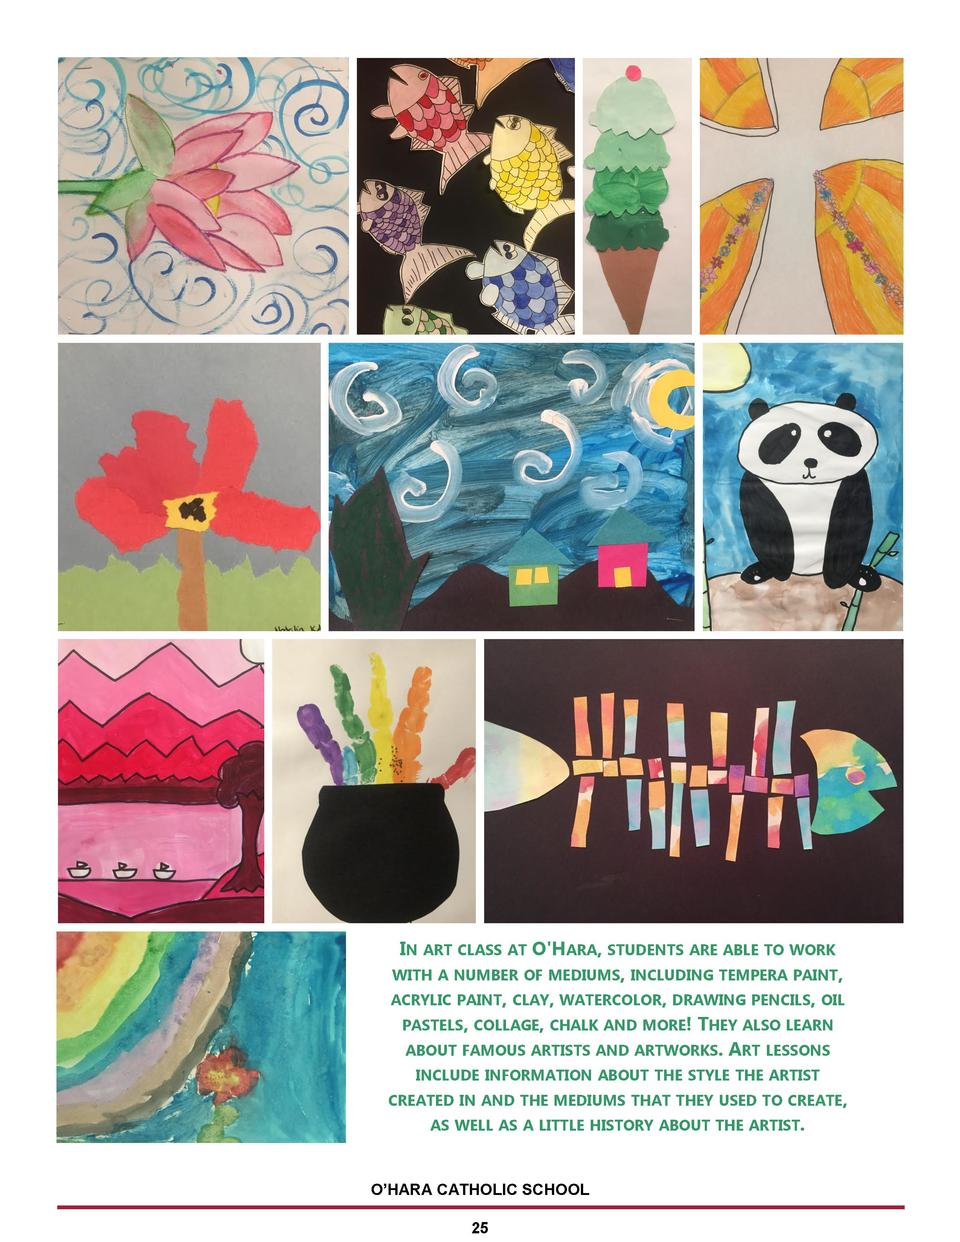 IN ART CLASS AT O HARA, STUDENTS ARE ABLE TO WORK WITH A NUMBER OF MEDIUMS, INCLUDING TEMPERA PAINT, ACRYLIC PAINT, CLAY, ...